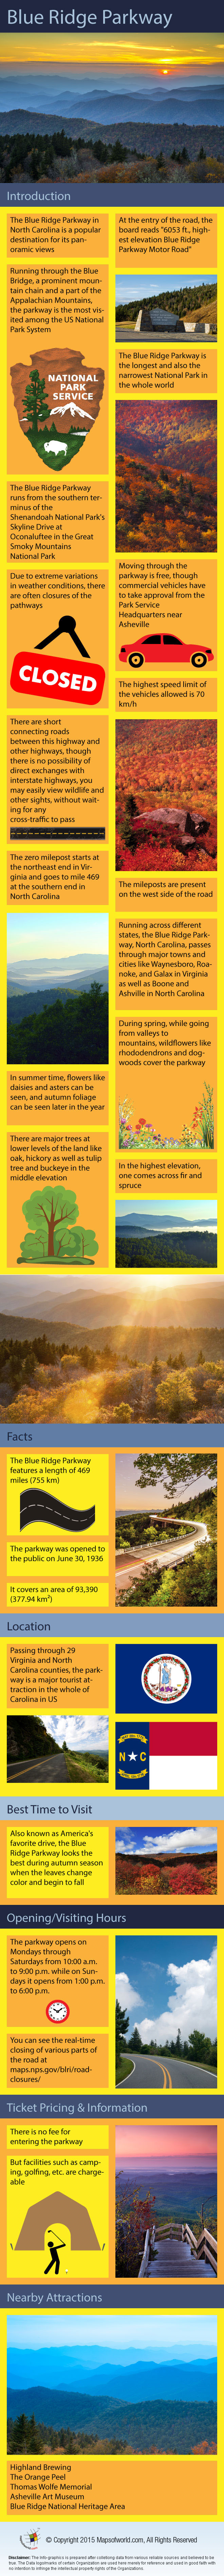 What is Blue Ridge Parkway - Infographic